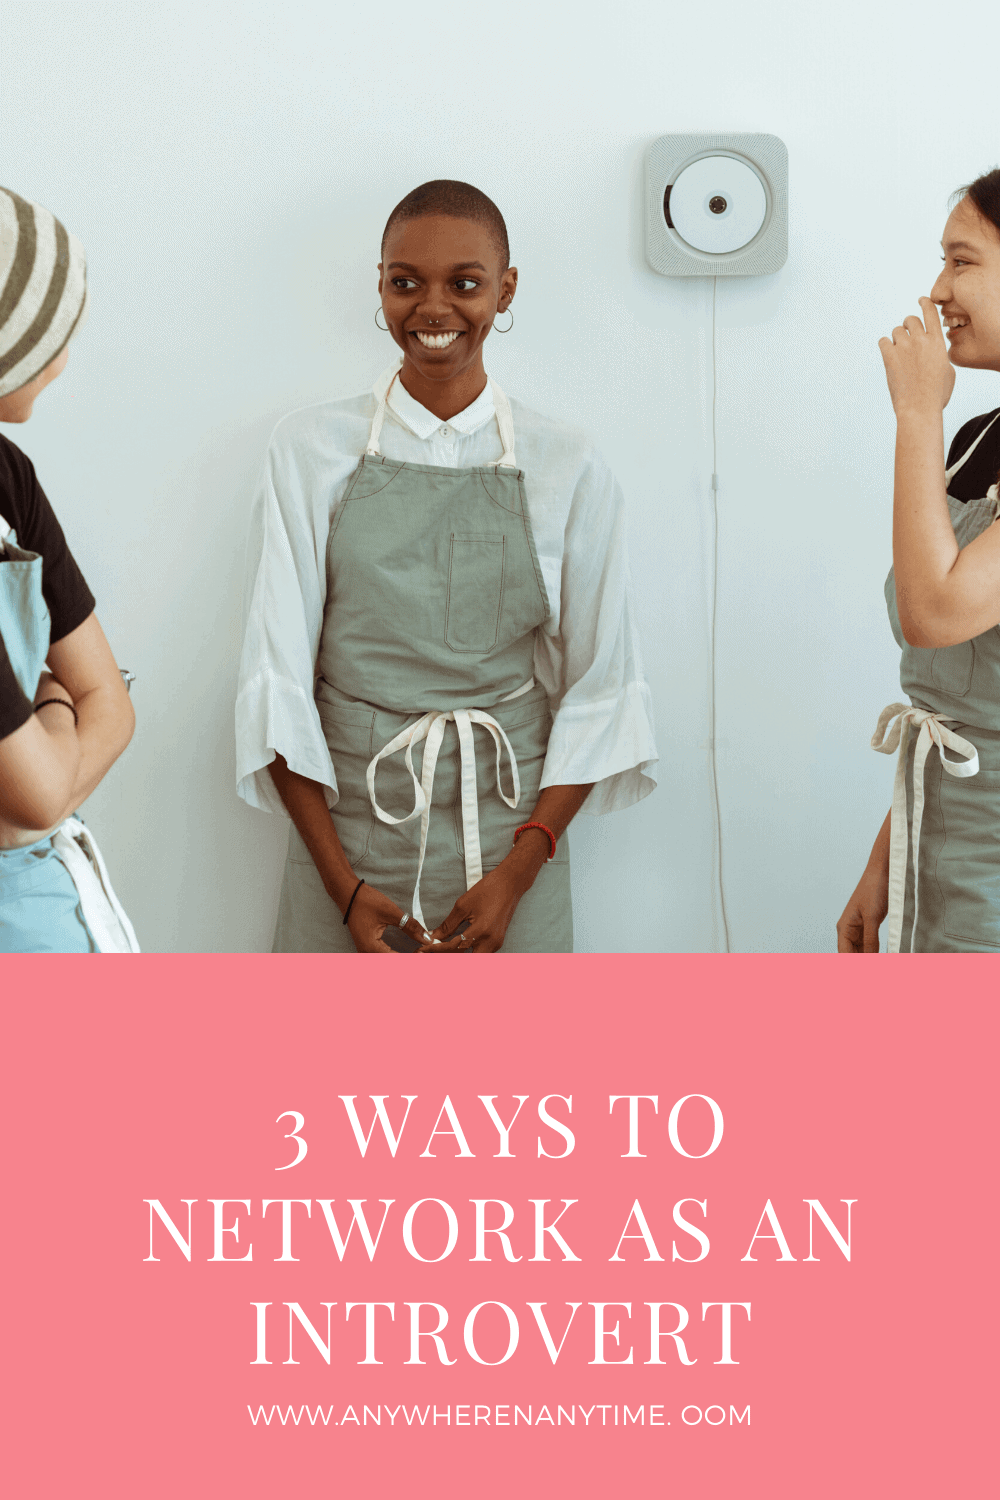 Introvert Networking in 3 Steps